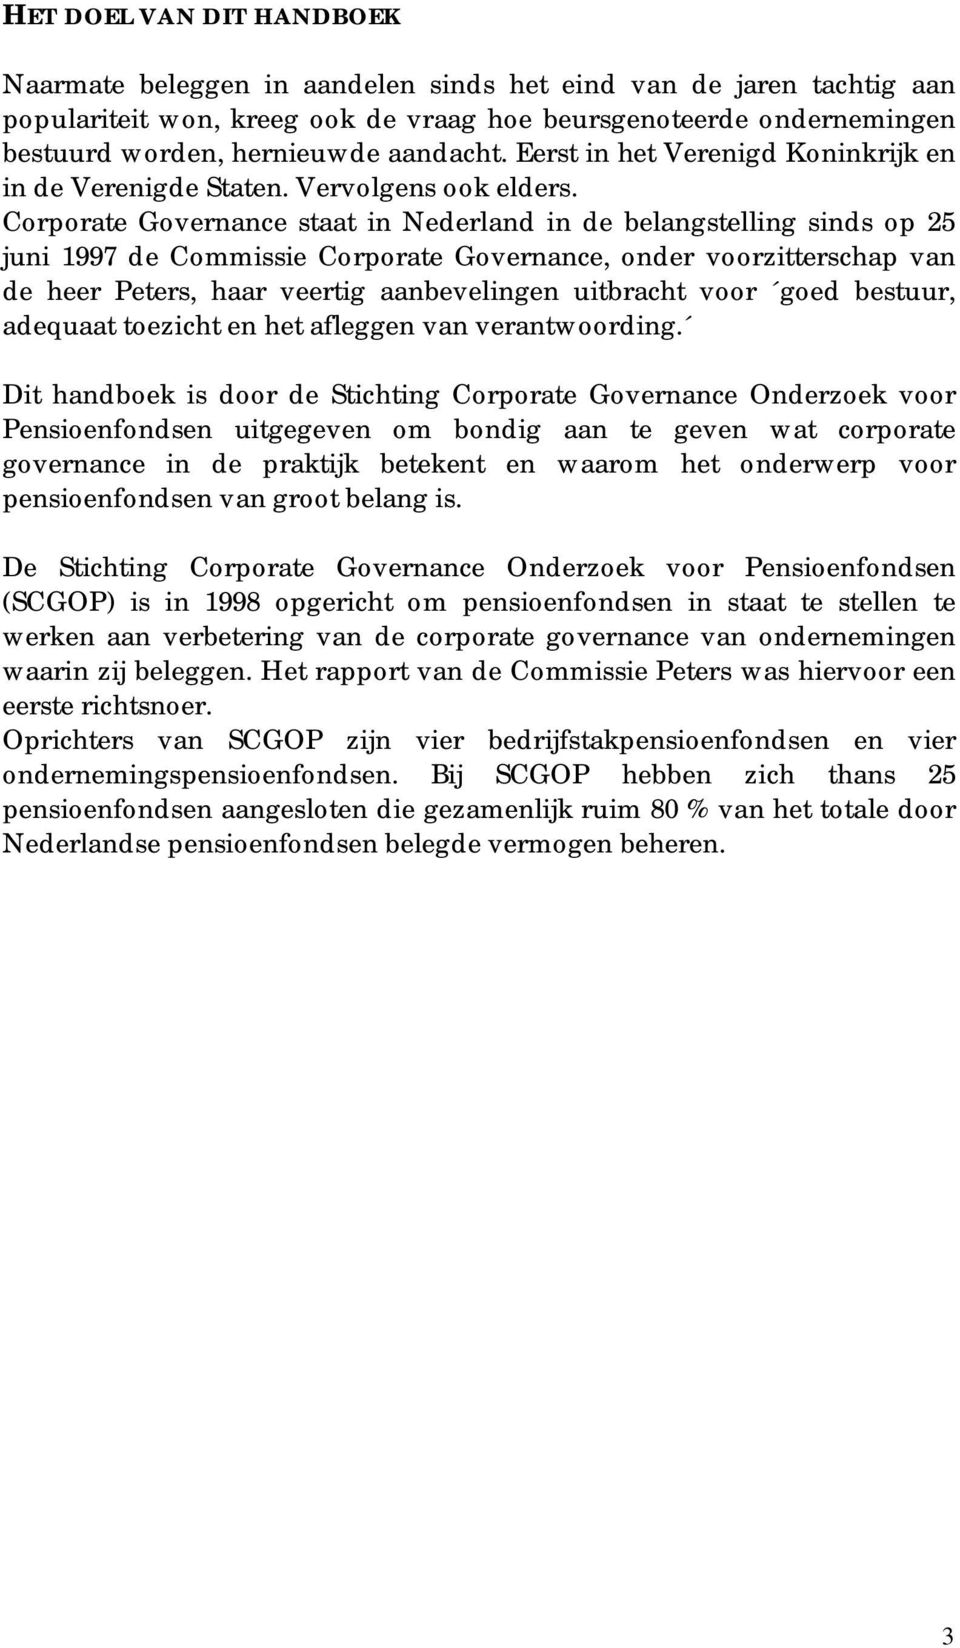 Corporate Governance staat in Nederland in de belangstelling sinds op 25 juni 1997 de Commissie Corporate Governance, onder voorzitterschap van de heer Peters, haar veertig aanbevelingen uitbracht